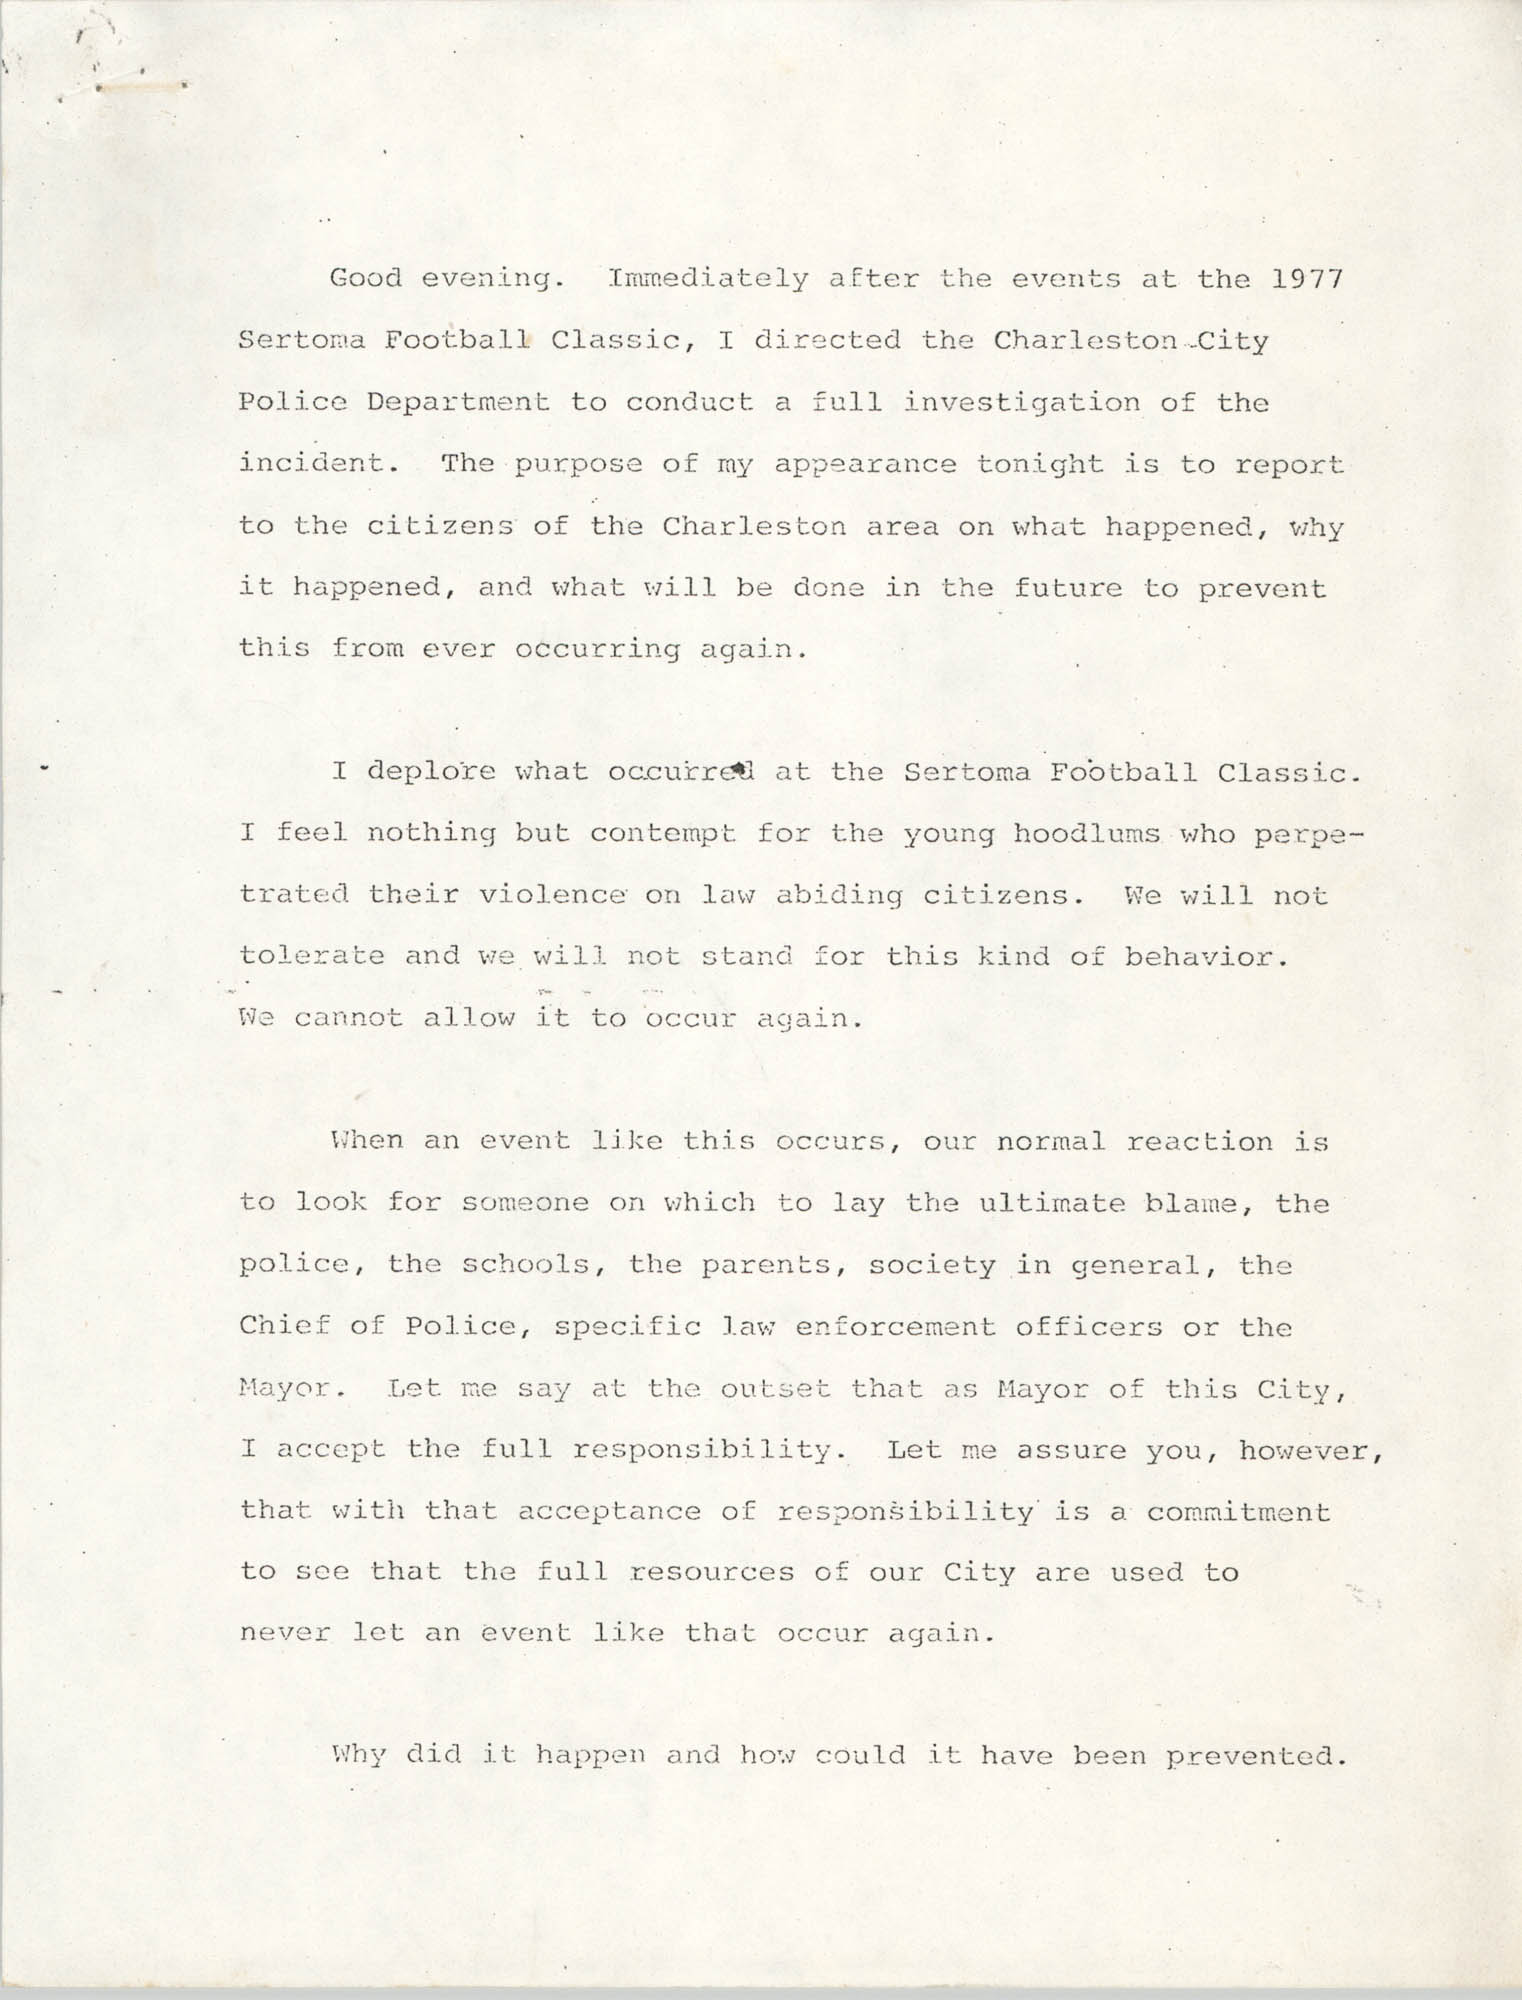 Statement by Joseph P. Riley, Jr., Sertoma Football Classic 1977 Incident, Page 1